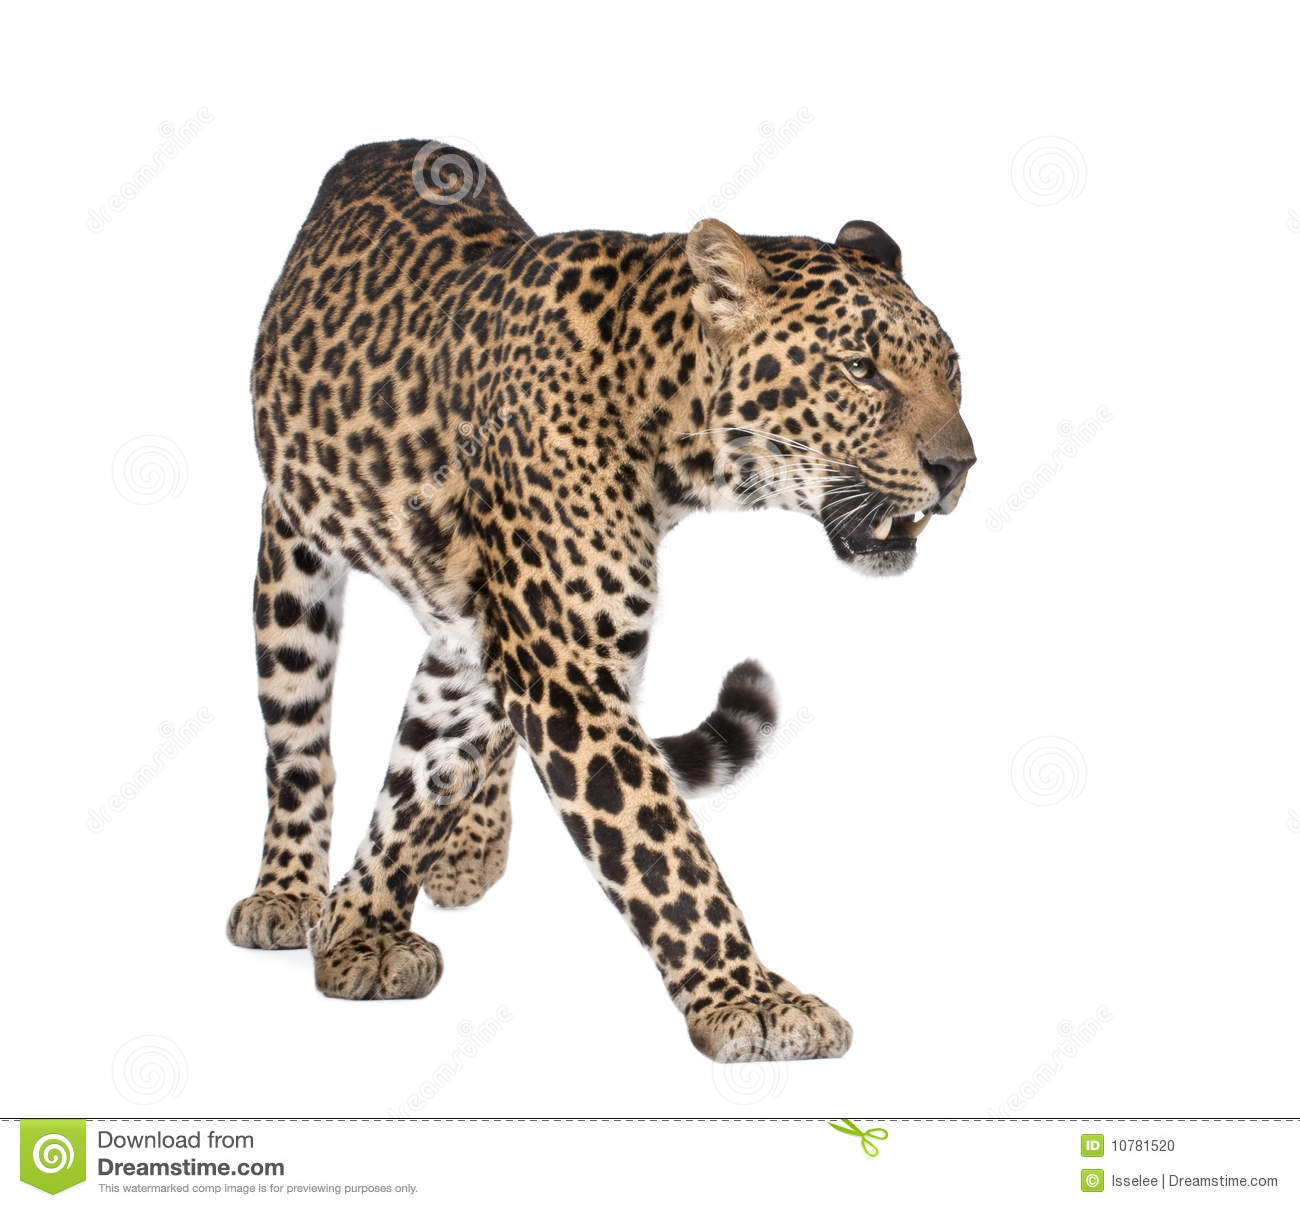 Portrait of leopard, Panthera pardus, walking